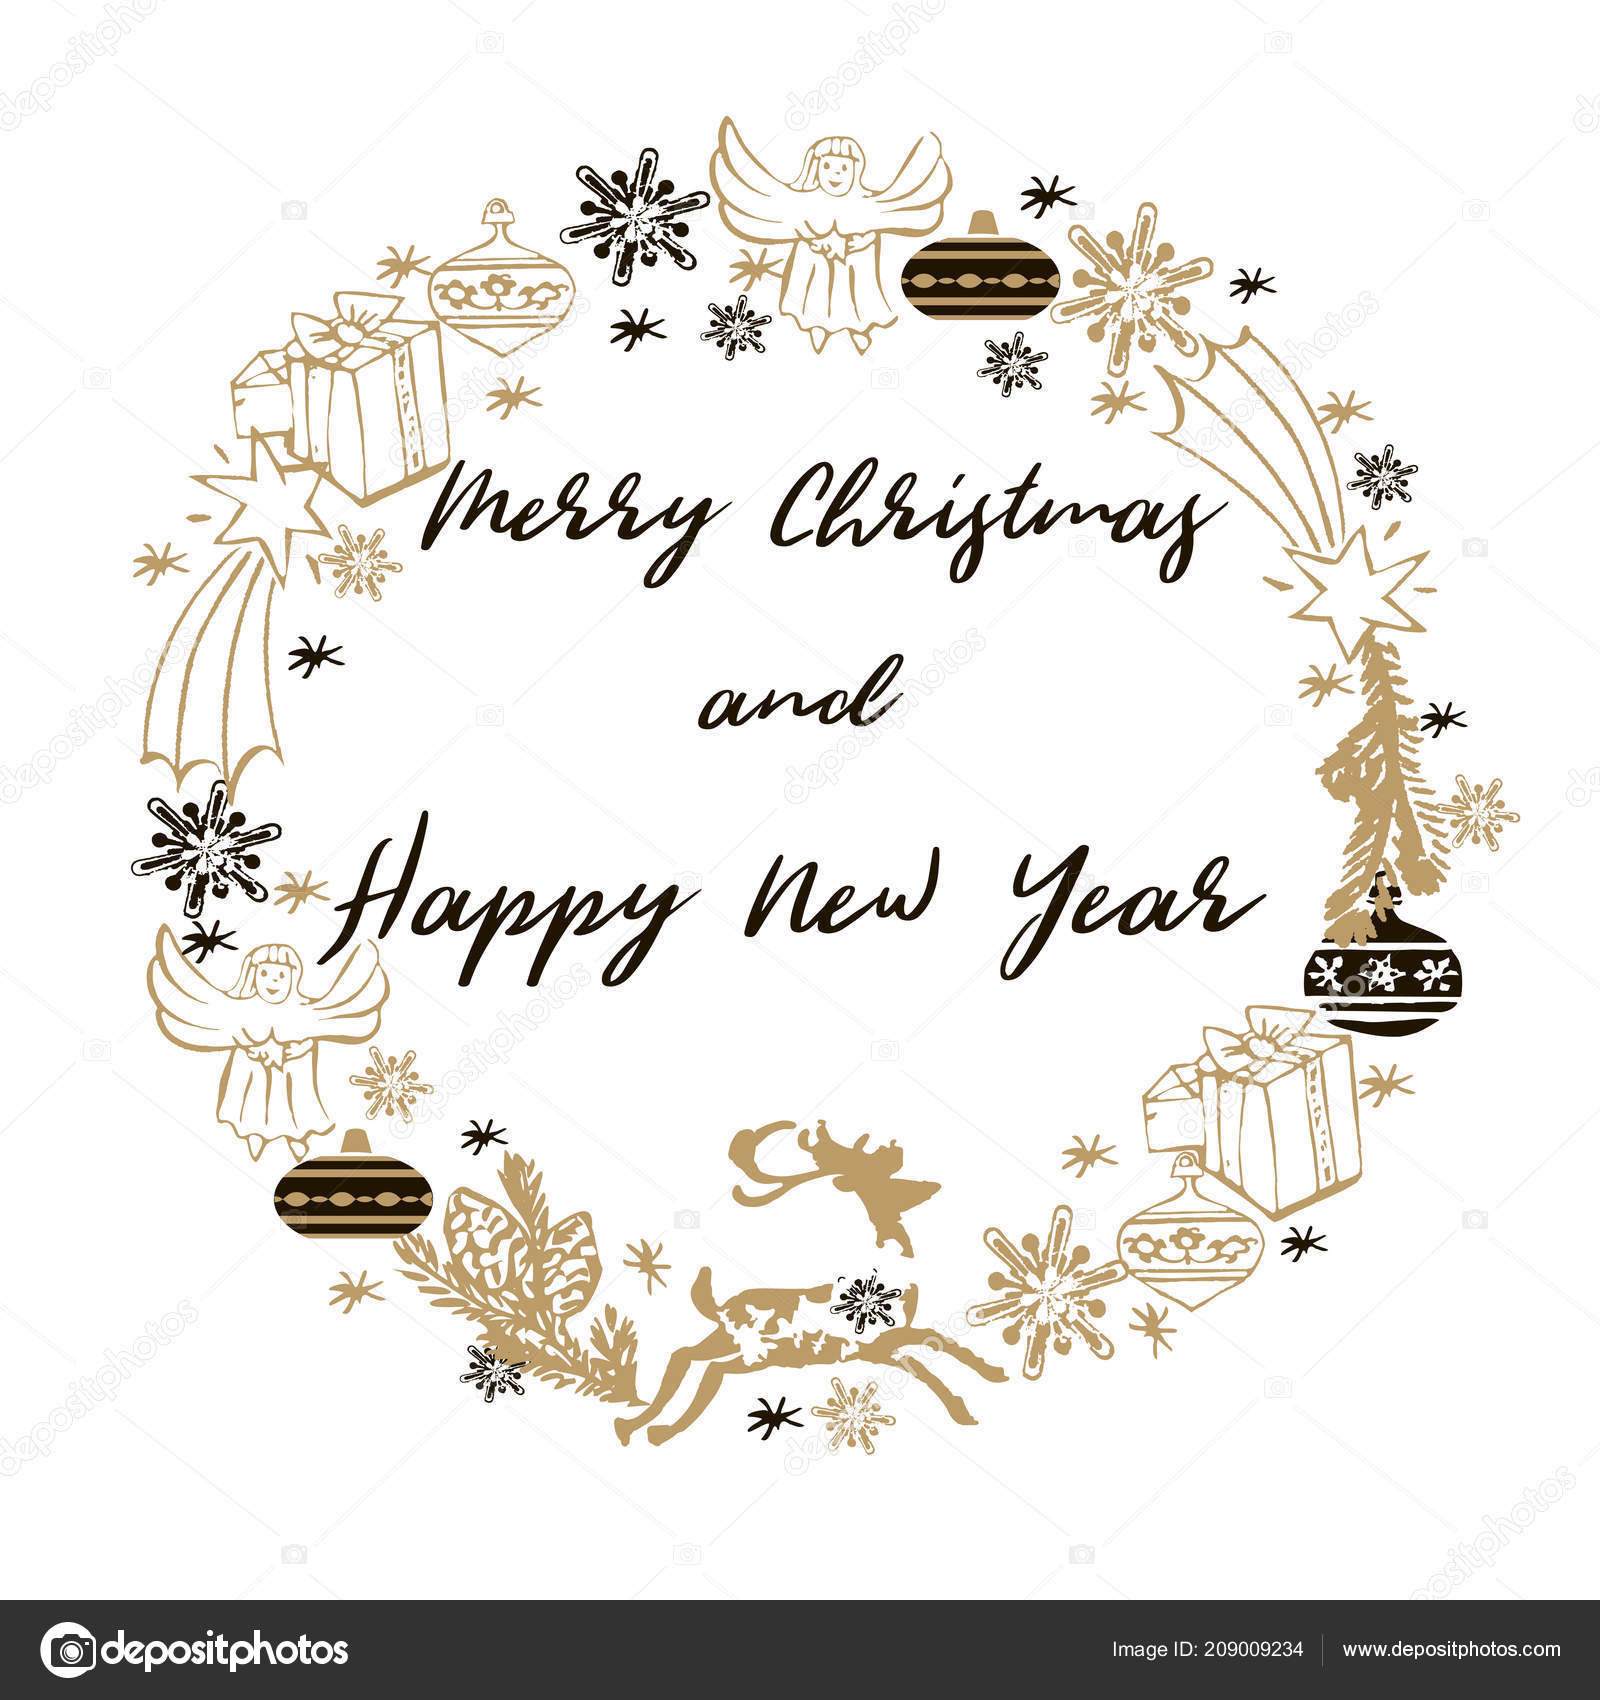 Merry christmas happy new year greeting card christmas wreath deers merry christmas happy new year greeting card christmas wreath deers stock vector m4hsunfo